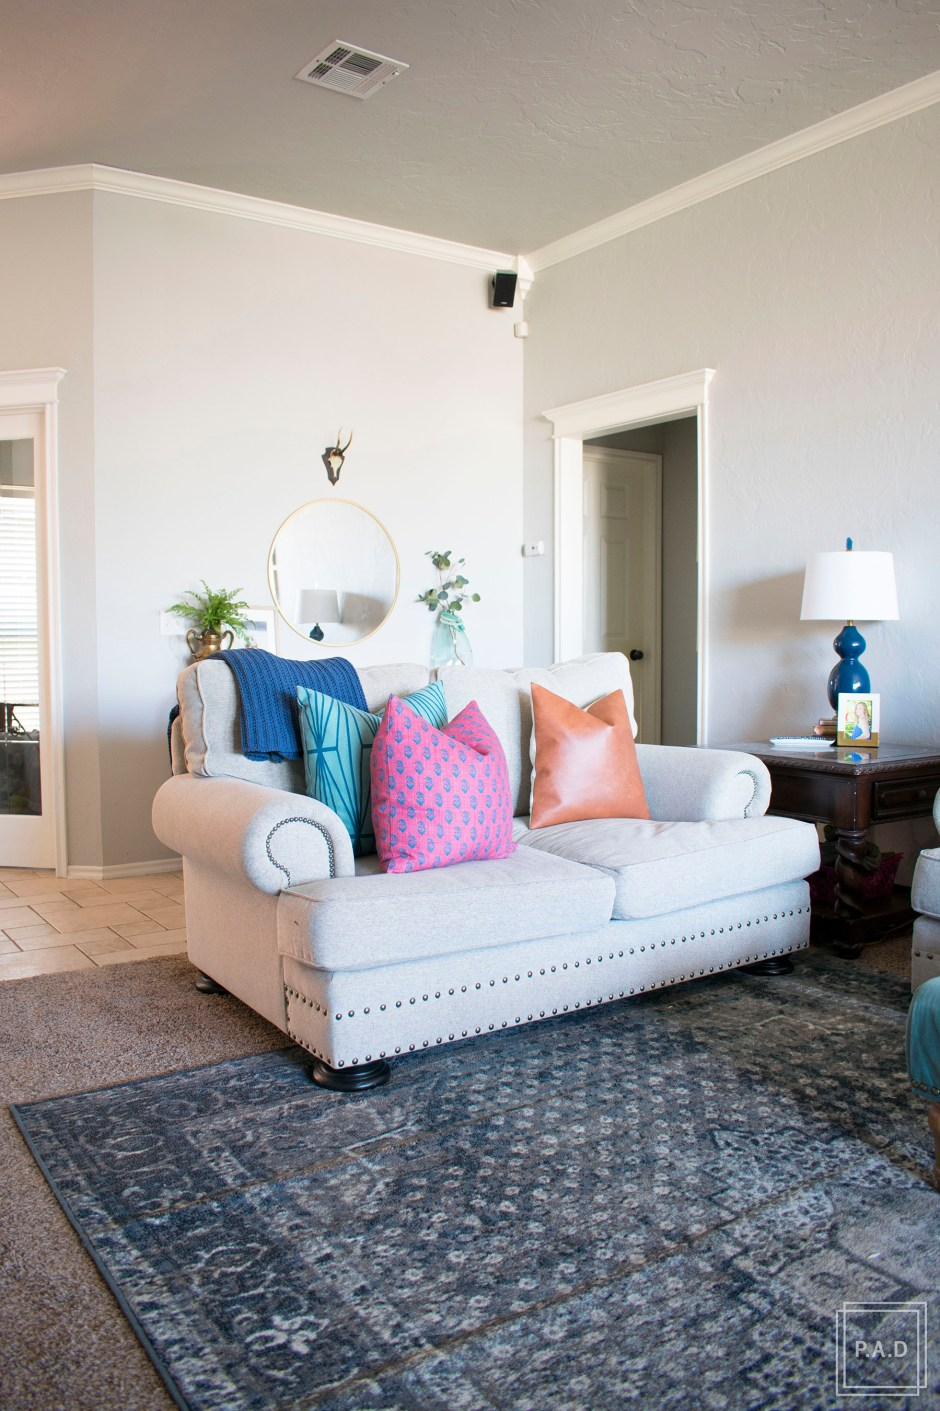 Modern Living Room Reveal | See how we completely transformed our living room. After years of living with it we couldn't be happier to show you the transformation and hope to give you some great living room ideas and inspo